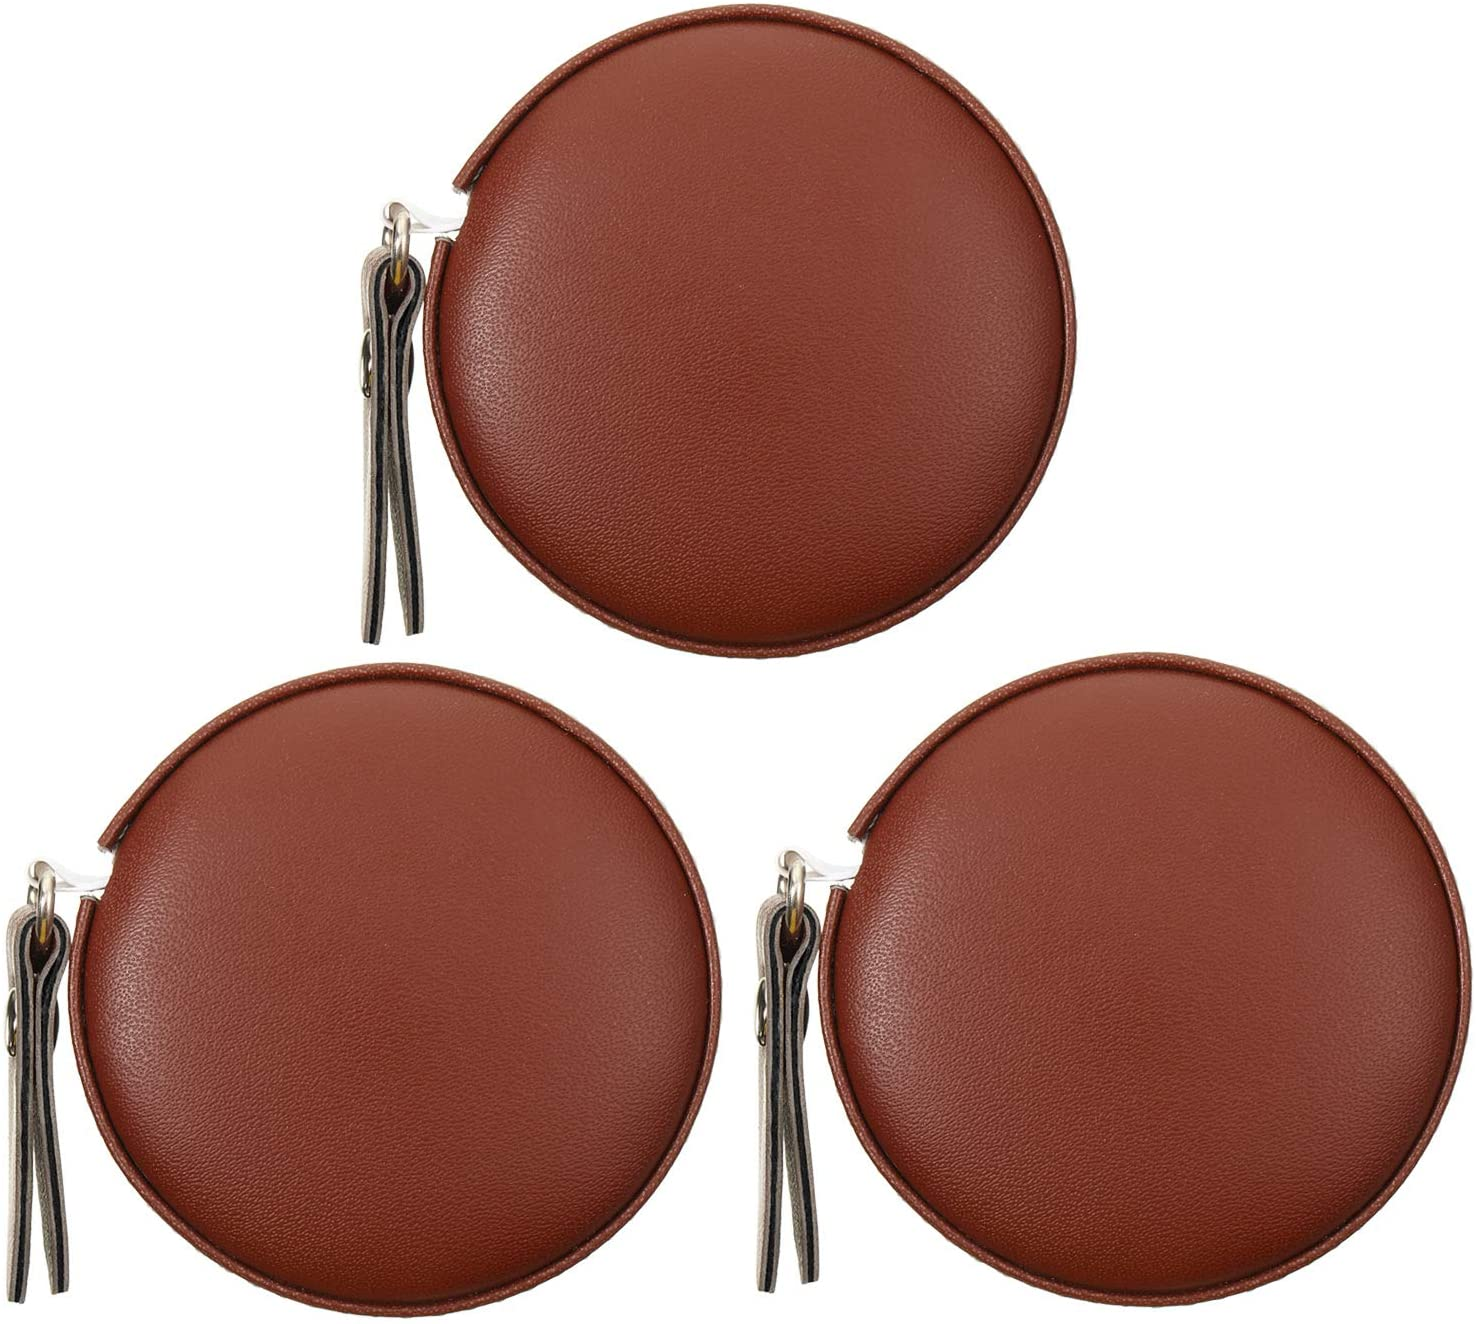 3 Pieces Body Measuring Tape Tape Measure Leather Retractable Tape Measure for Body or Weight Loss, Accurate Sewing Tape Measure 60 Inch/1.5 M, Round (Brown)